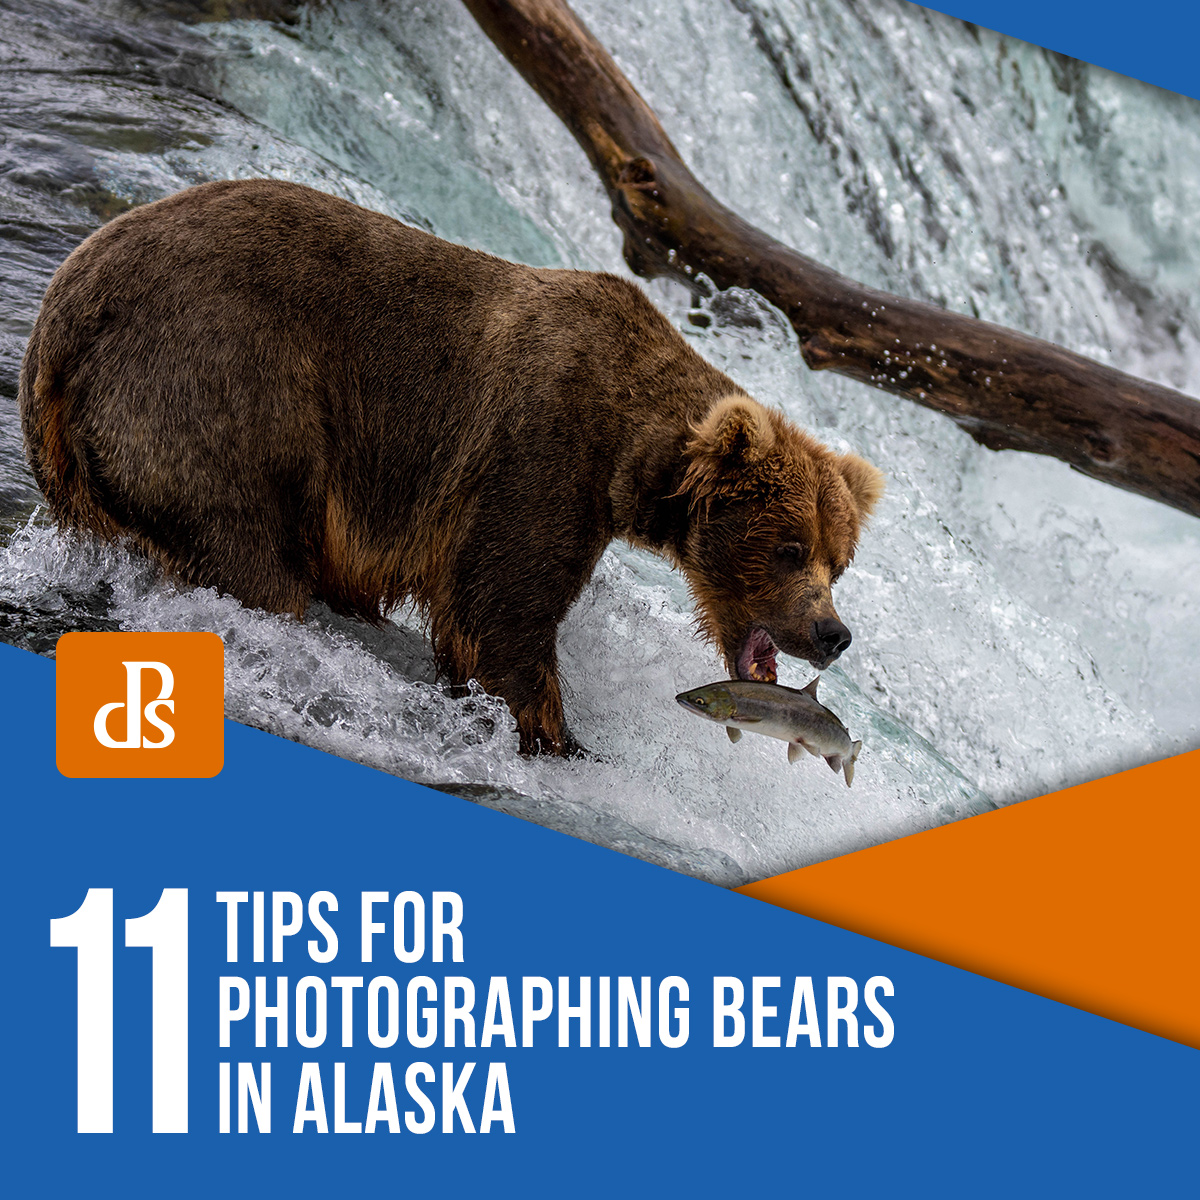 tips-for-photographing-bears-in-alaska